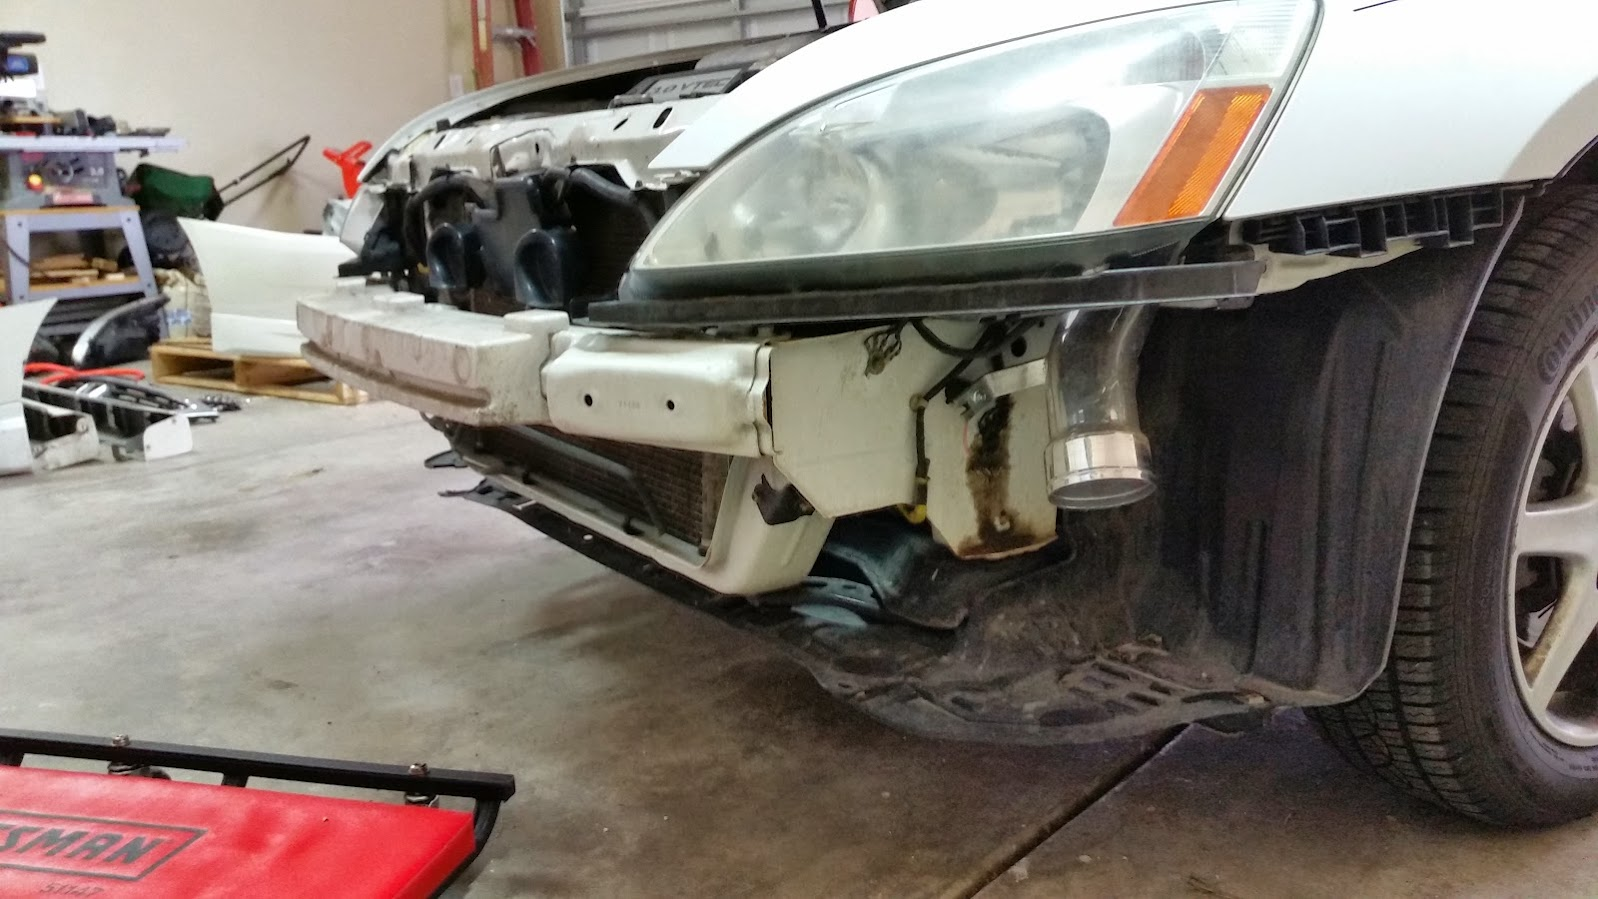 Metalballs Inspire Modulo Gen7 Build Honda Accord Forum V6 Wiring Harness For 03 Ex The Additional That You Can See In This Pic Is From Aftermarket 9000k Hid Low Beam Kit I Had Installed